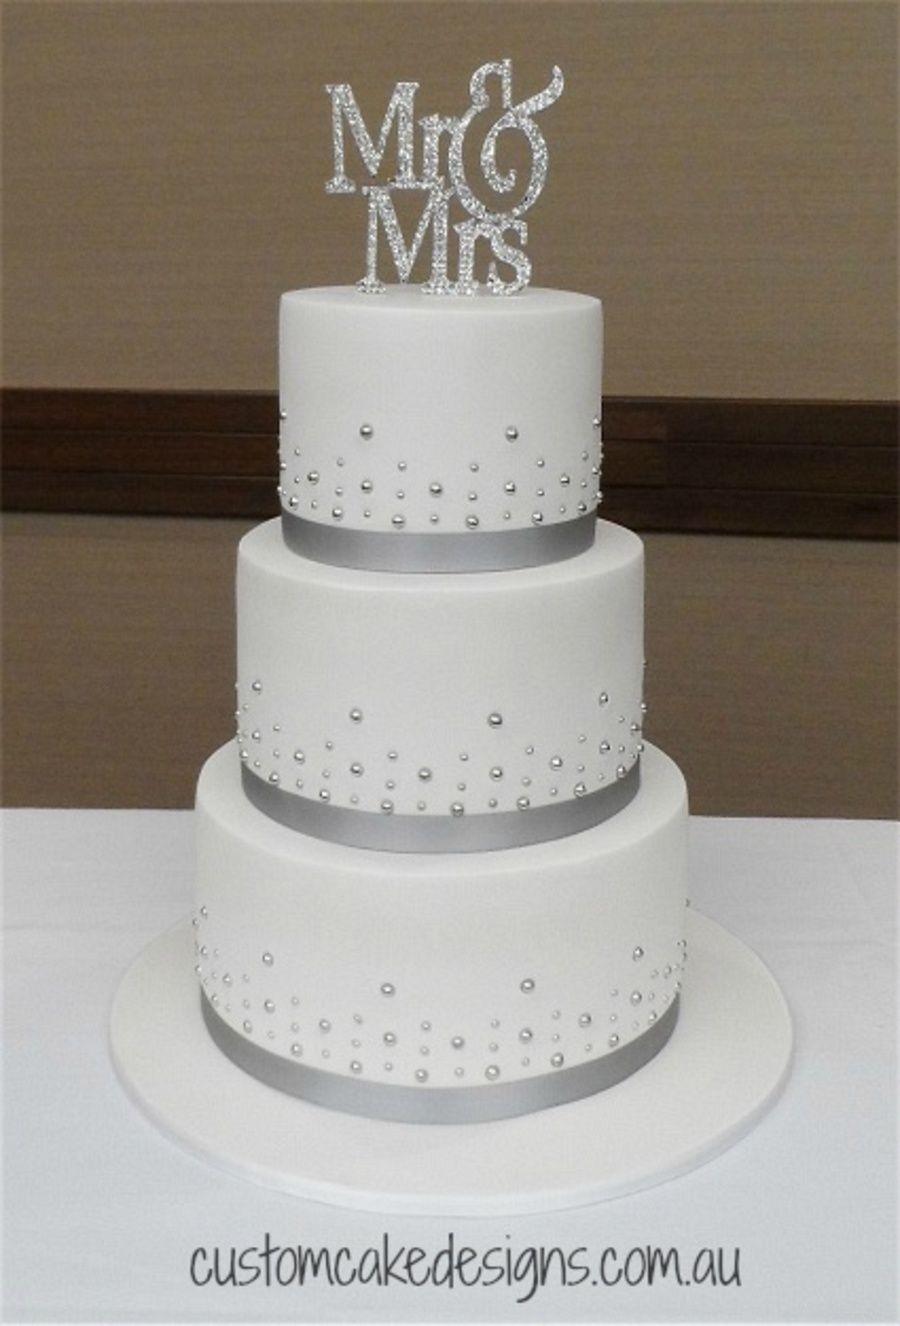 This elegant and simple design was chosen by the bride Wedding